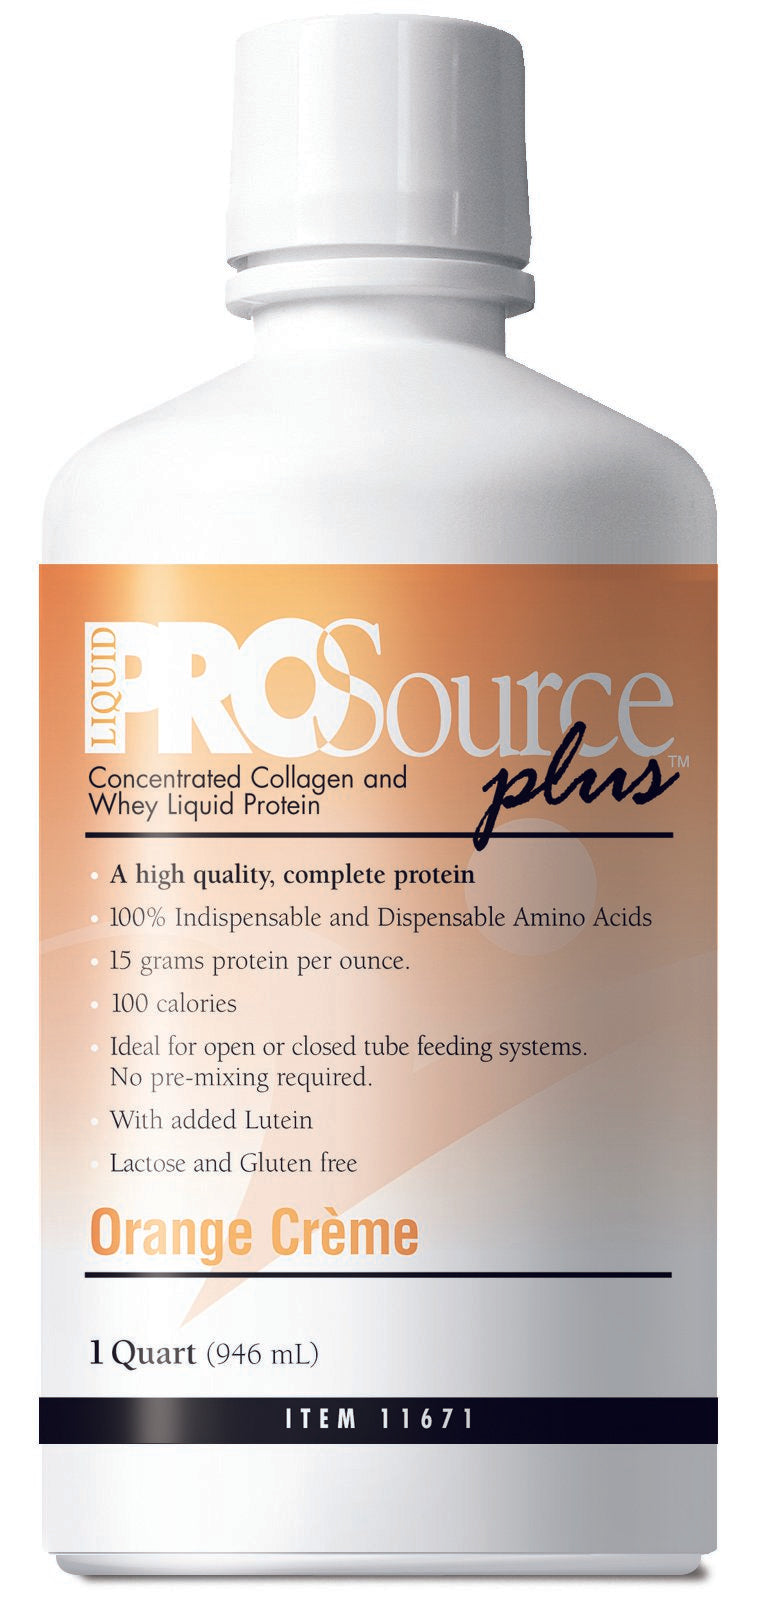 Protein Supplement ProSource Plus™ Orange Crème Flavor 32 oz. Bottle Ready to Use